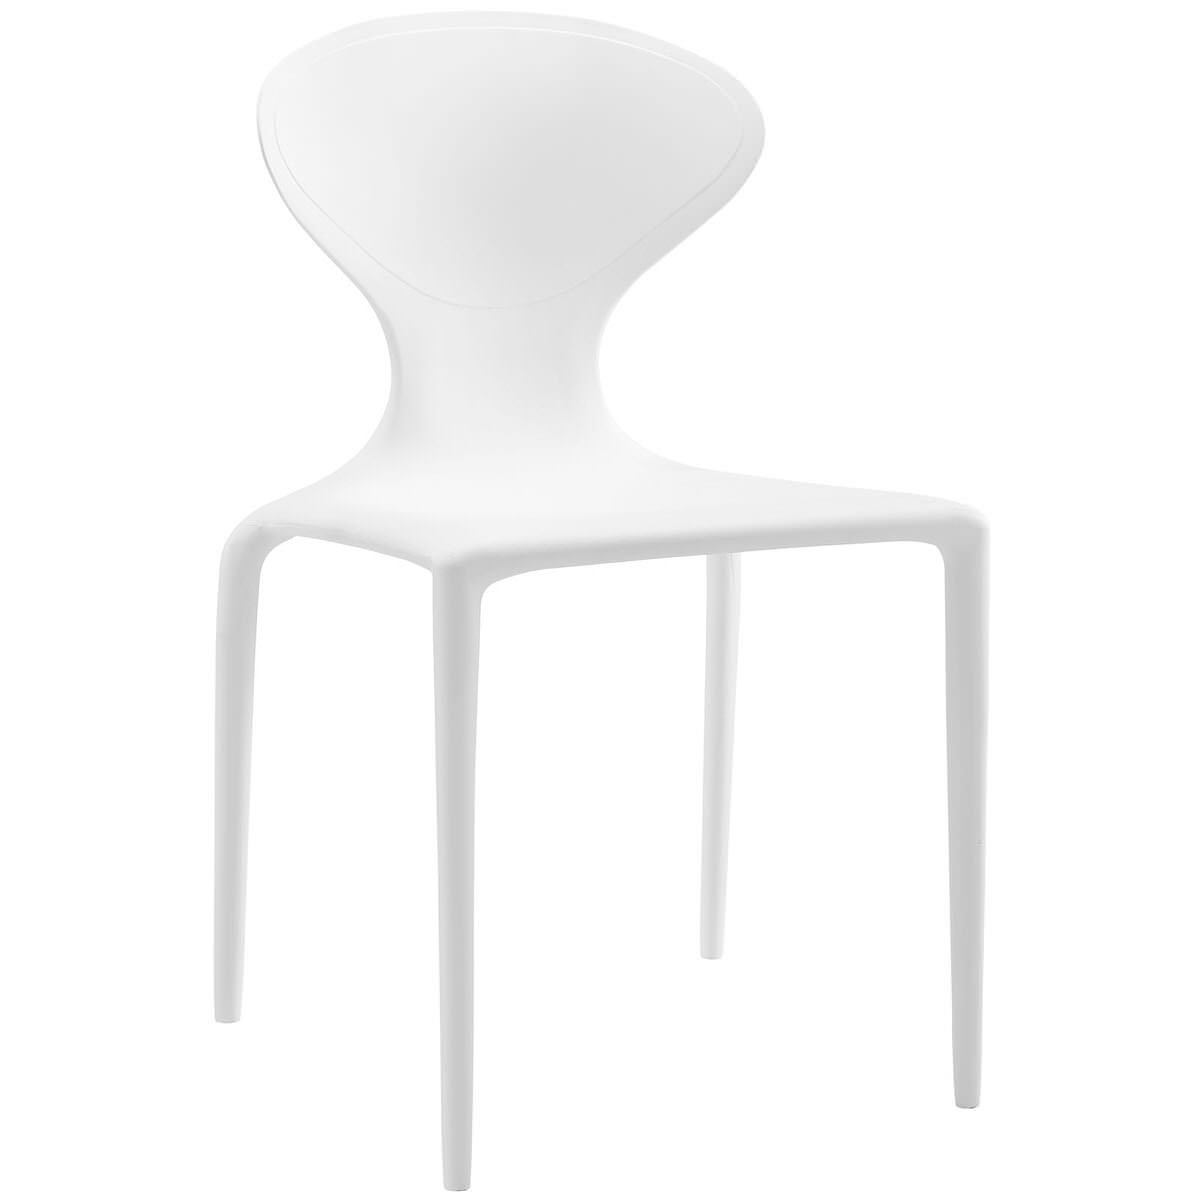 Outstanding Draw Dining Side Chair White By Modway Uwap Interior Chair Design Uwaporg